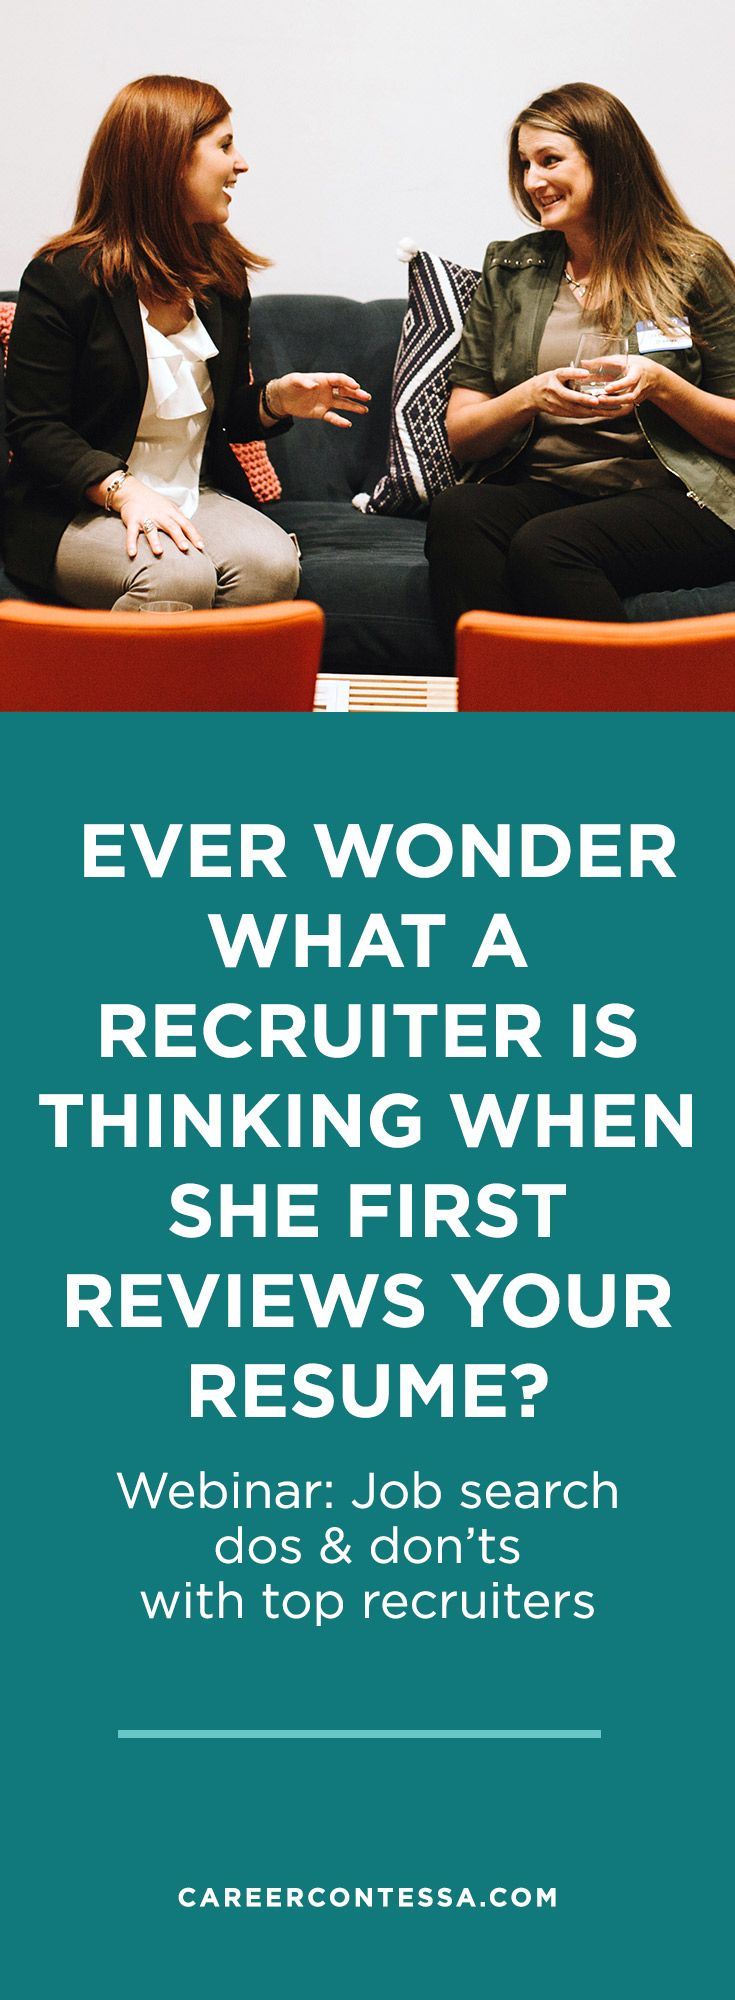 Want to know what you should be doing to land your dream job? Ever wonder what a recruiter is thinking when she first reviews your resume? Four recruiters will be talking about what makes a job search successful and how you can use your time wisely when applying for a new role. Stop applying with crossed fingers and outdated strategies. | CareerContessa.com